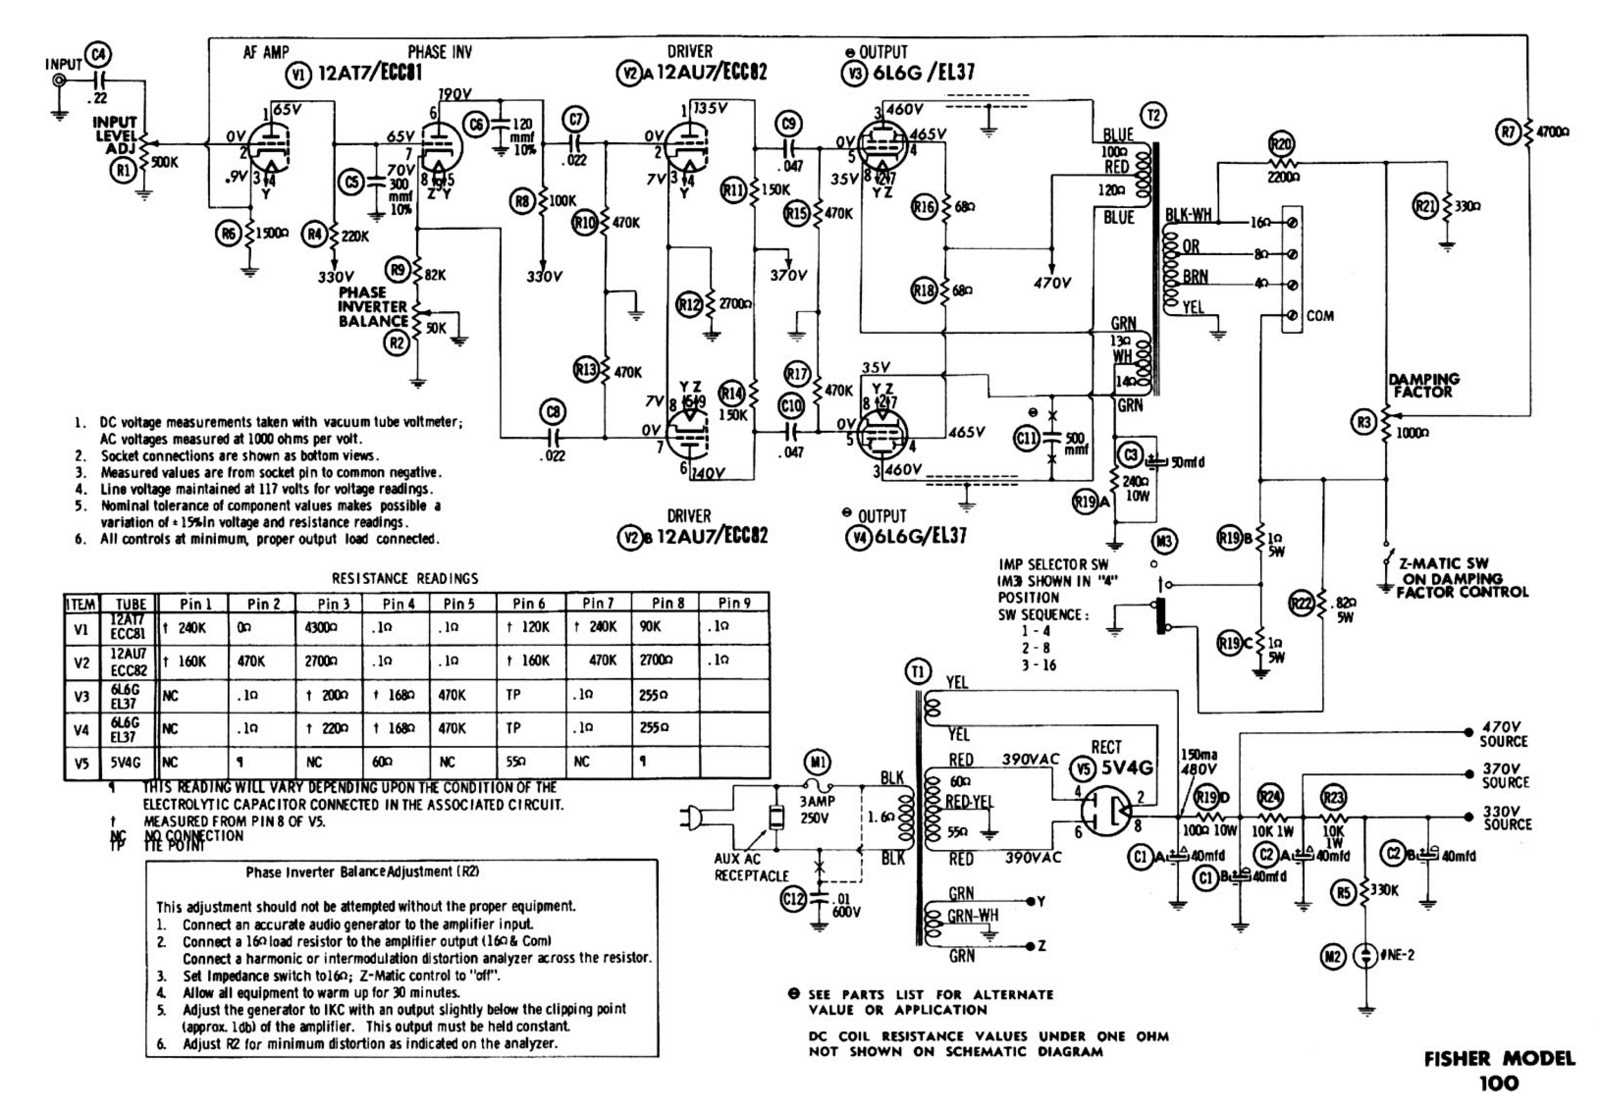 Stereo Tube Amplifier Schematics Schematic Diagrams Otl Headphone Circuit Diagram Amplifiercircuit Fisher Product Wiring U2022 Audio